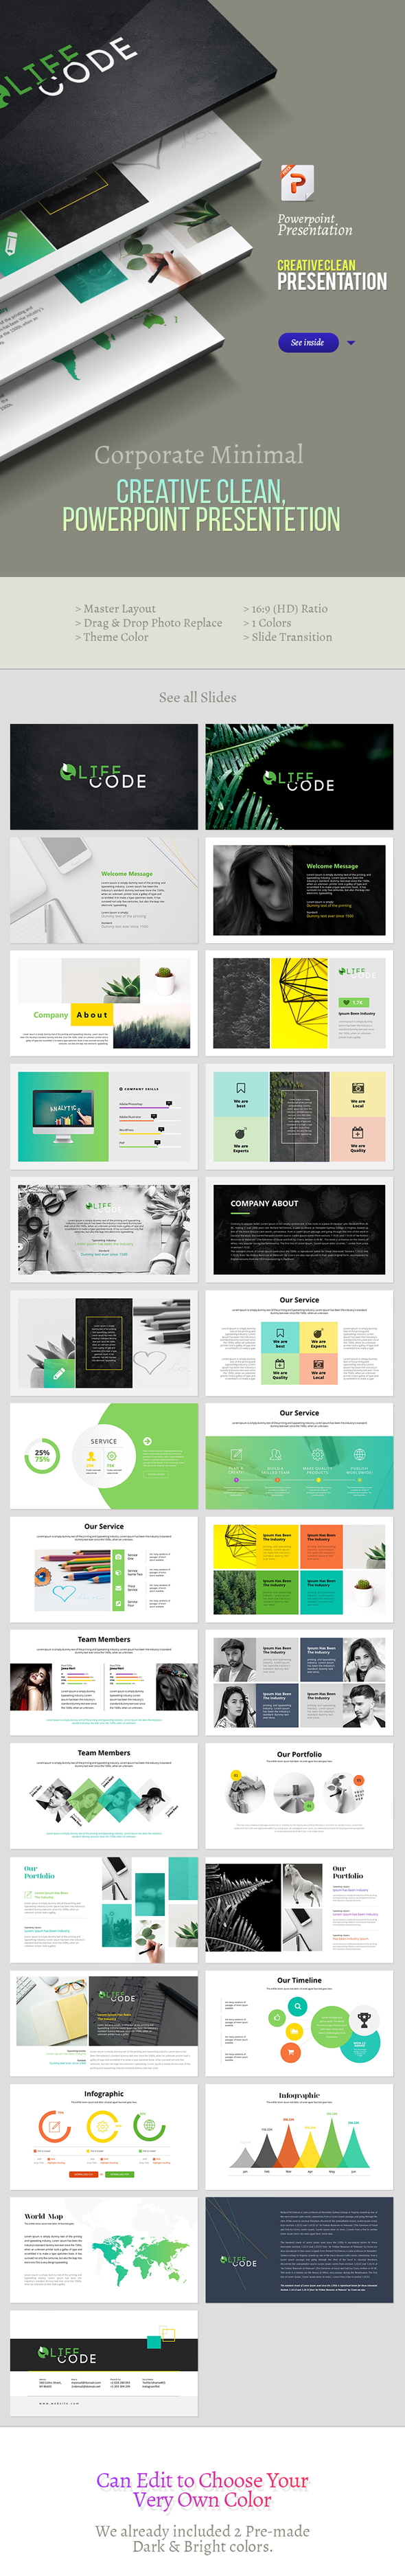 Clean & Creative Powerpoint Presentation - Creative PowerPoint Templates